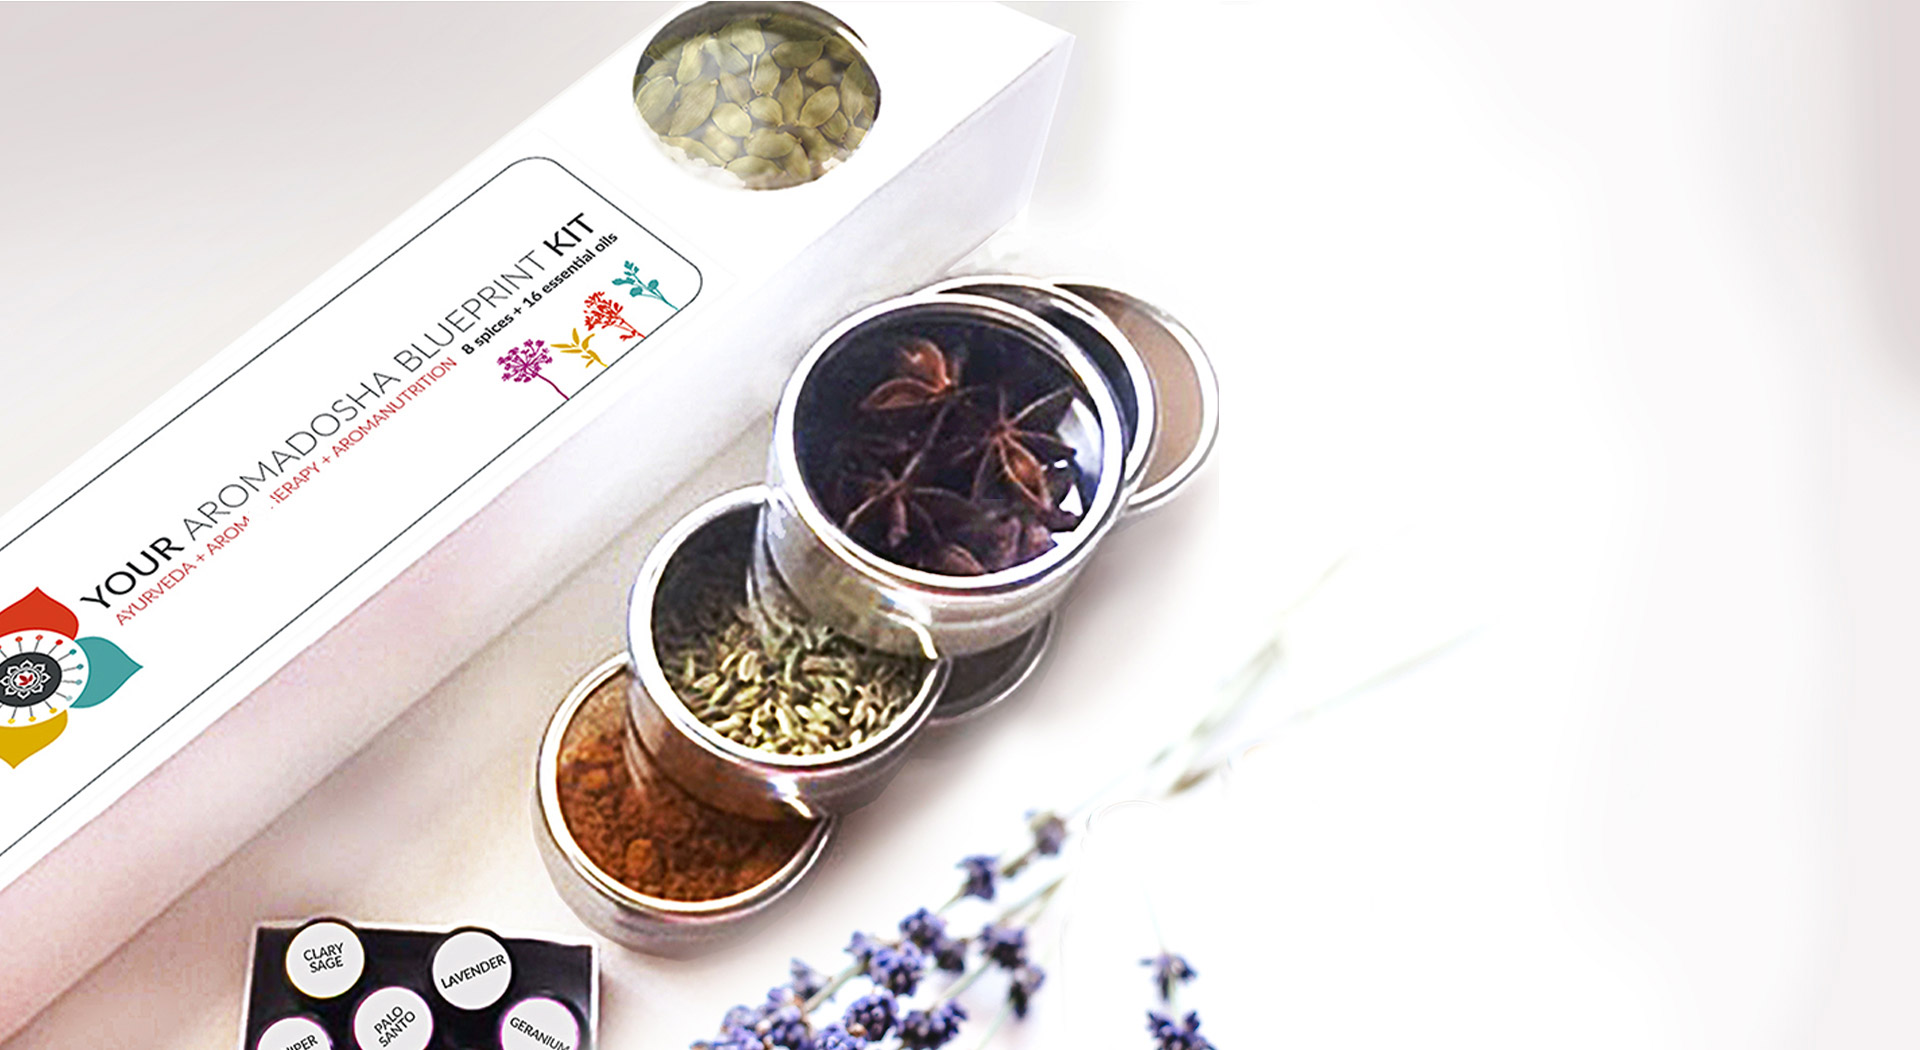 ADBP Spice Kit, spices & lavender